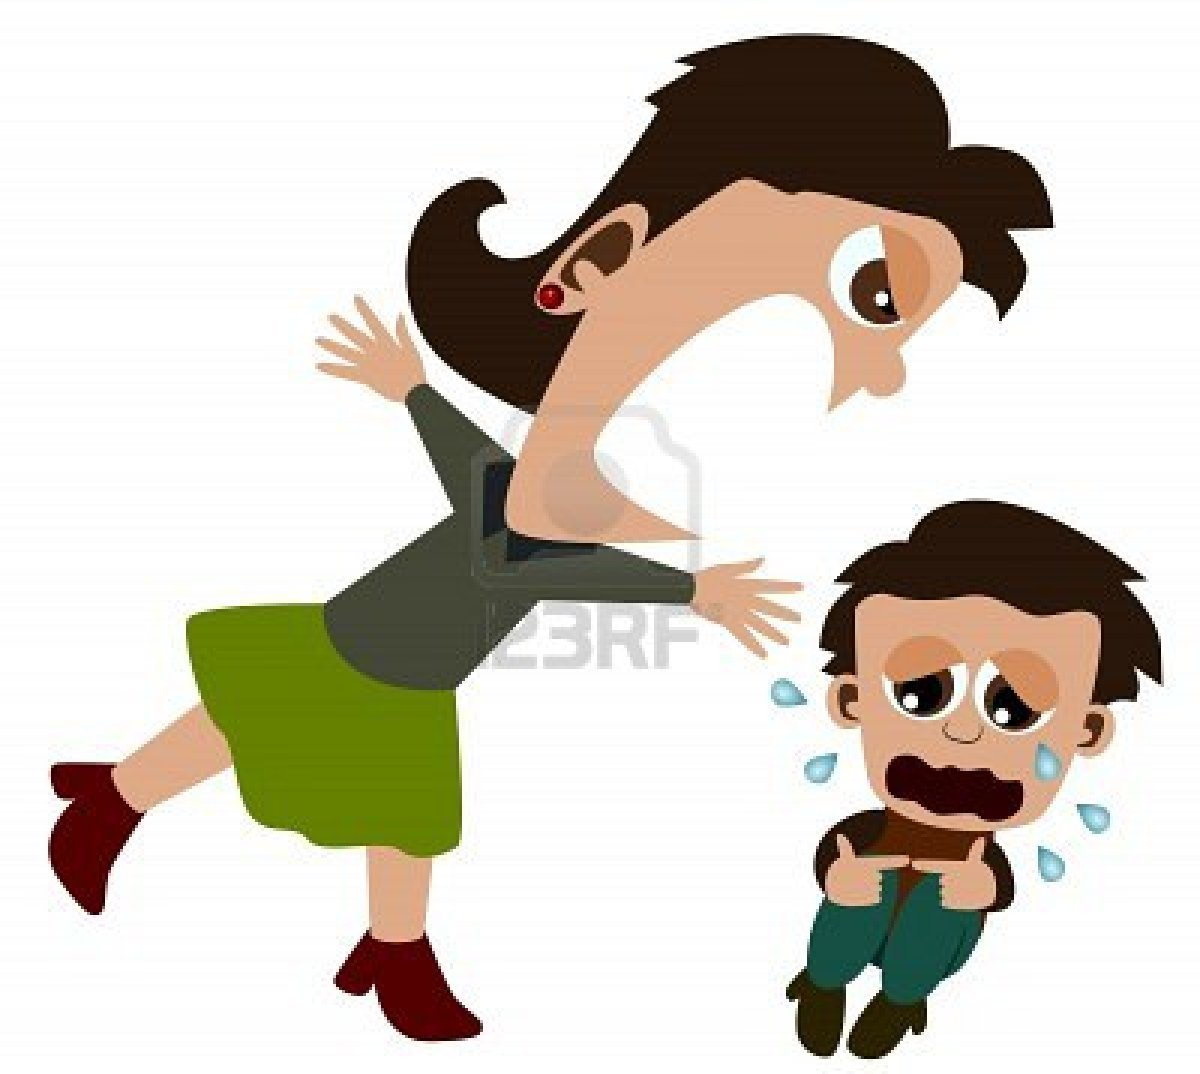 A Mother Scolding Child Cartoon Clip Art free image.